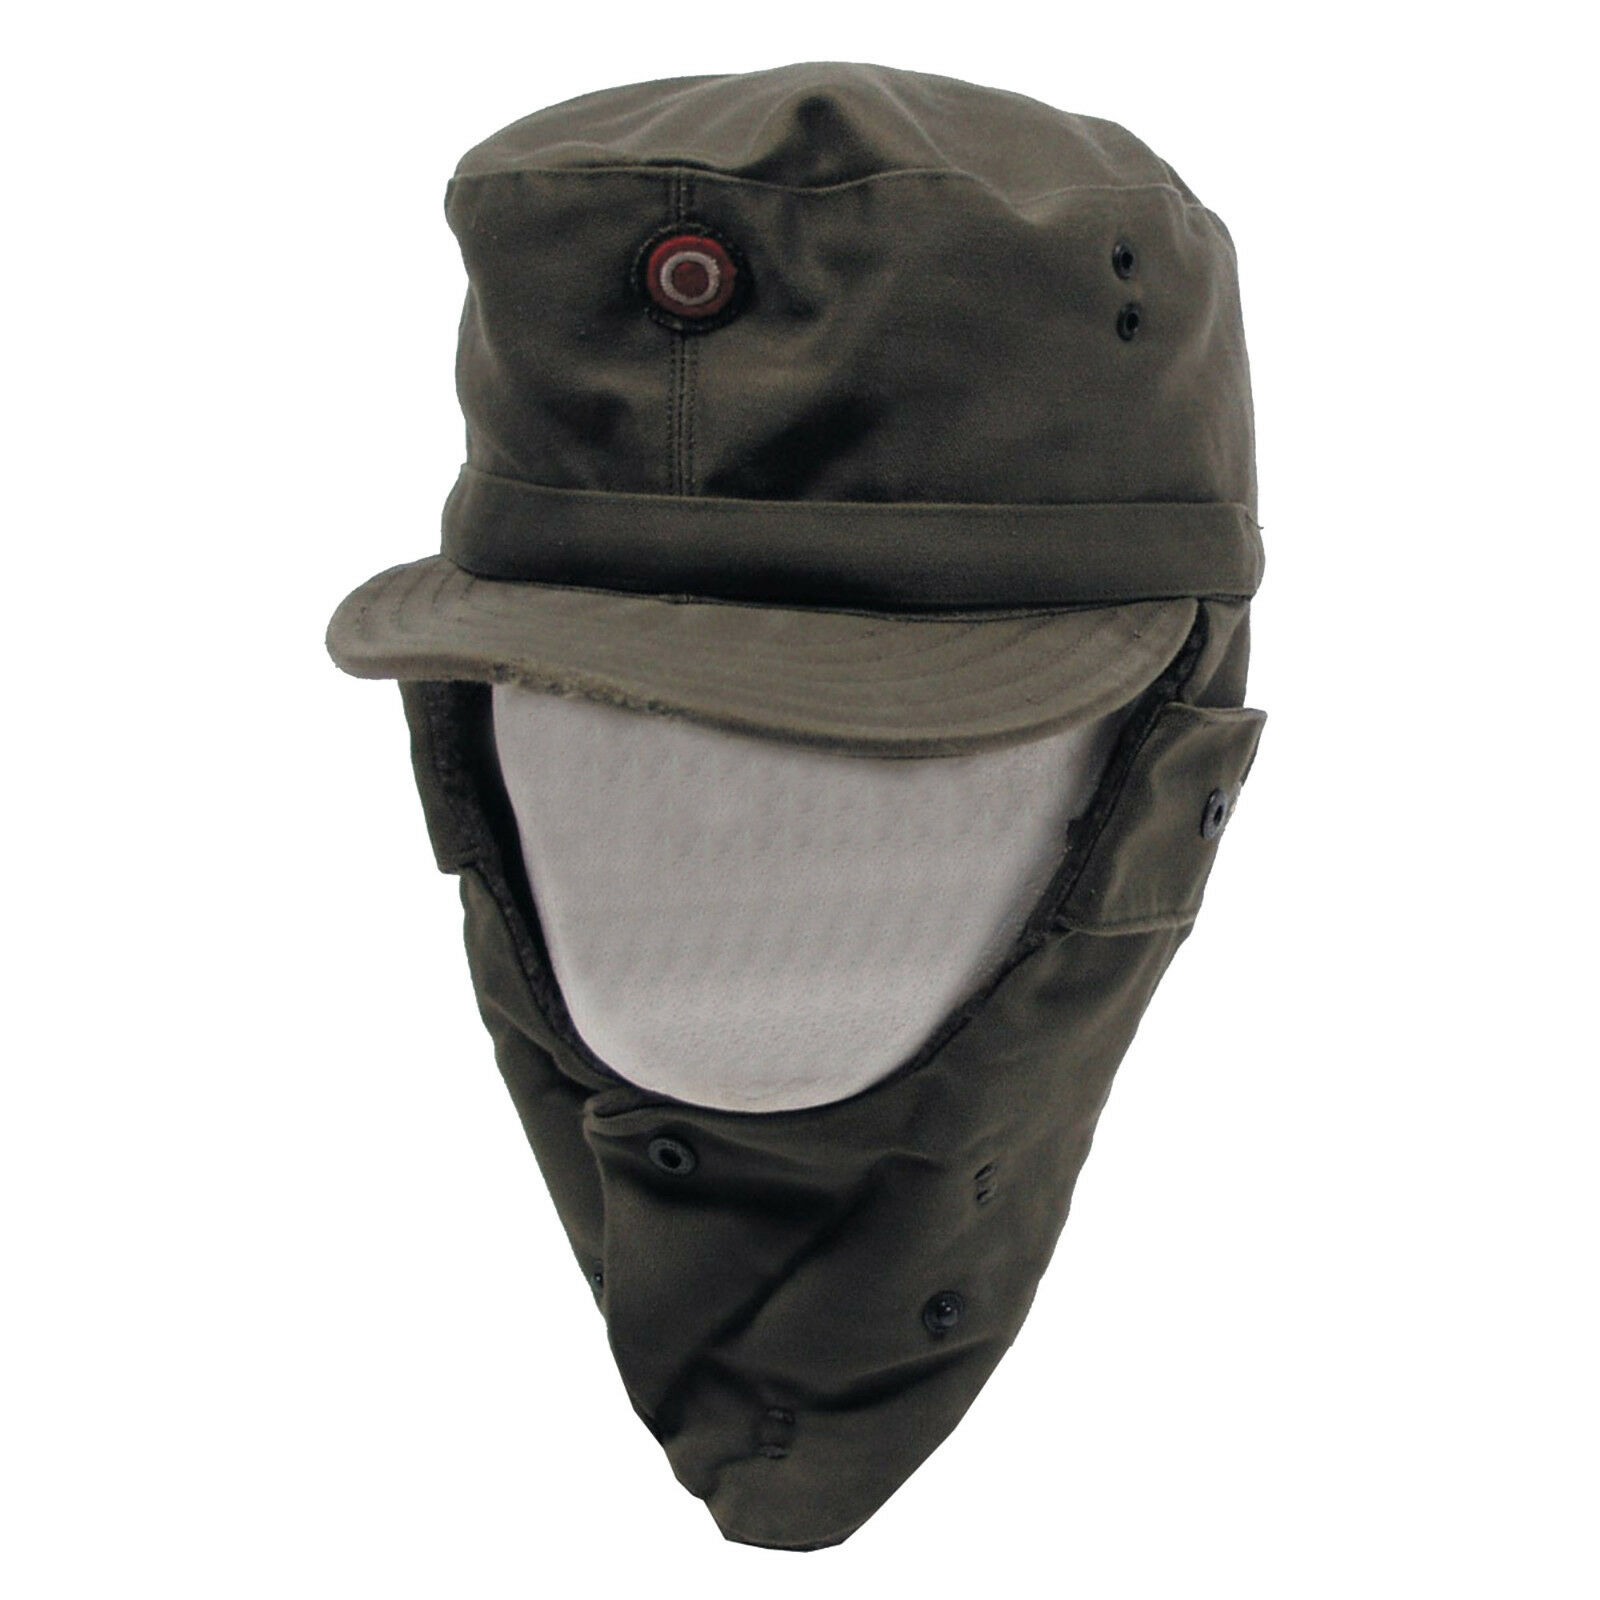 Genuine Austrian Army Olive Green Winter Pile Cap Hat Grade 1. GENUINE Austrian  ARMY ISSUED GRADE 1 USED CONDITION FOLDING EAR FLAPS WITH Button Poppers 722dd402a29